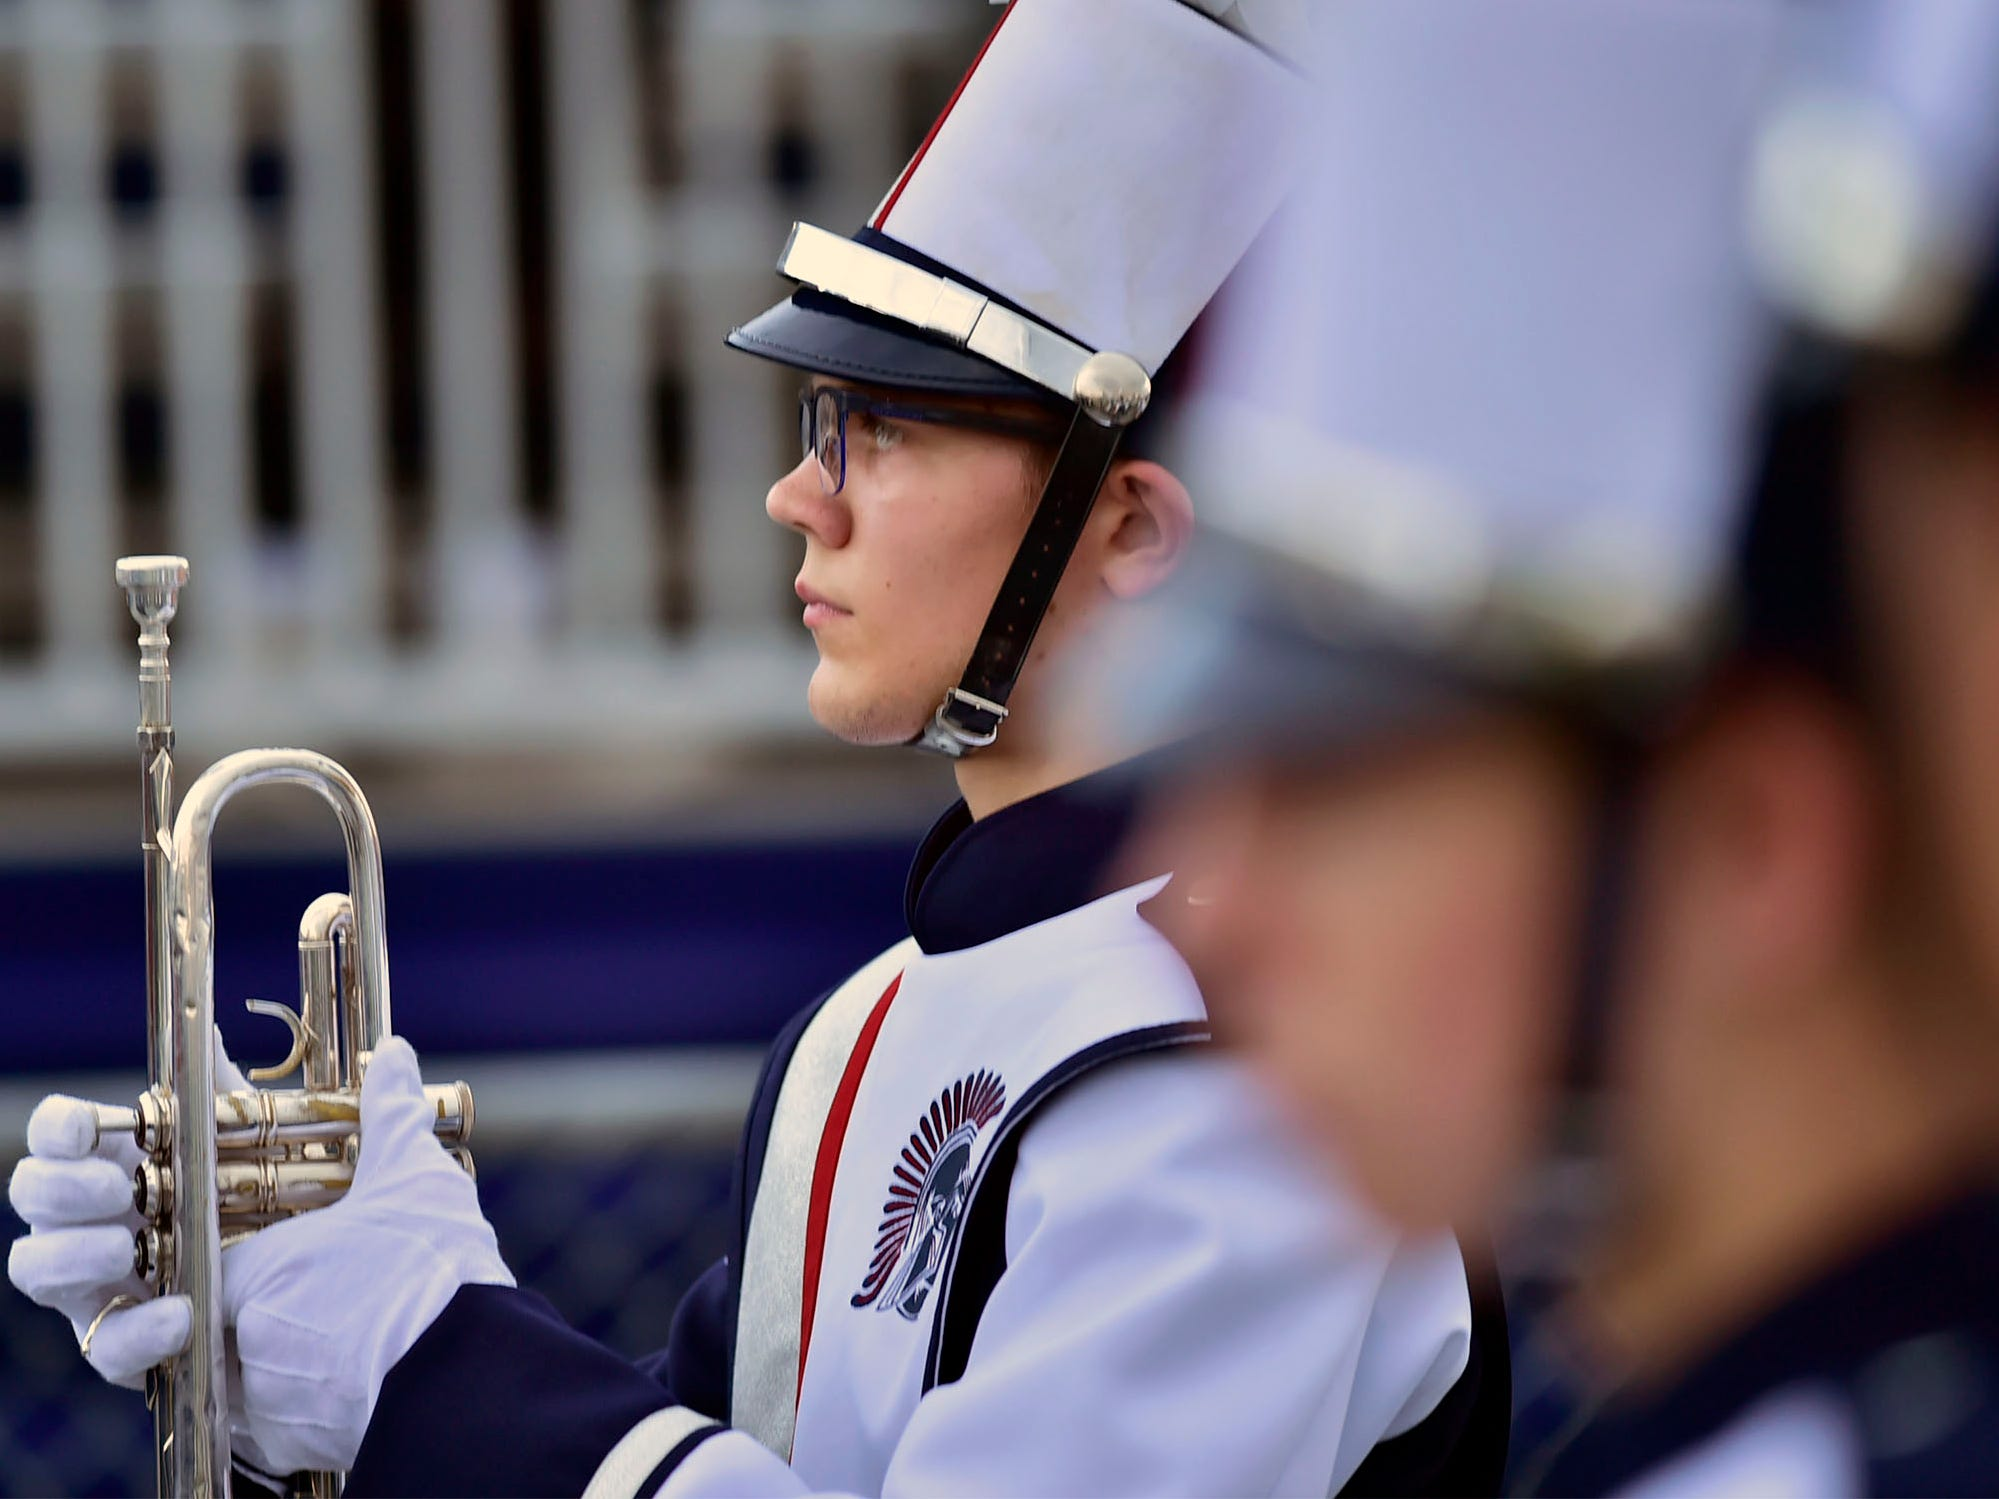 The Chambersburg Trojan Marching Band put on a show at Trojan Stadium. Chambersburg routed South Western 51-26 in football on Friday, Aug. 31, 2018.